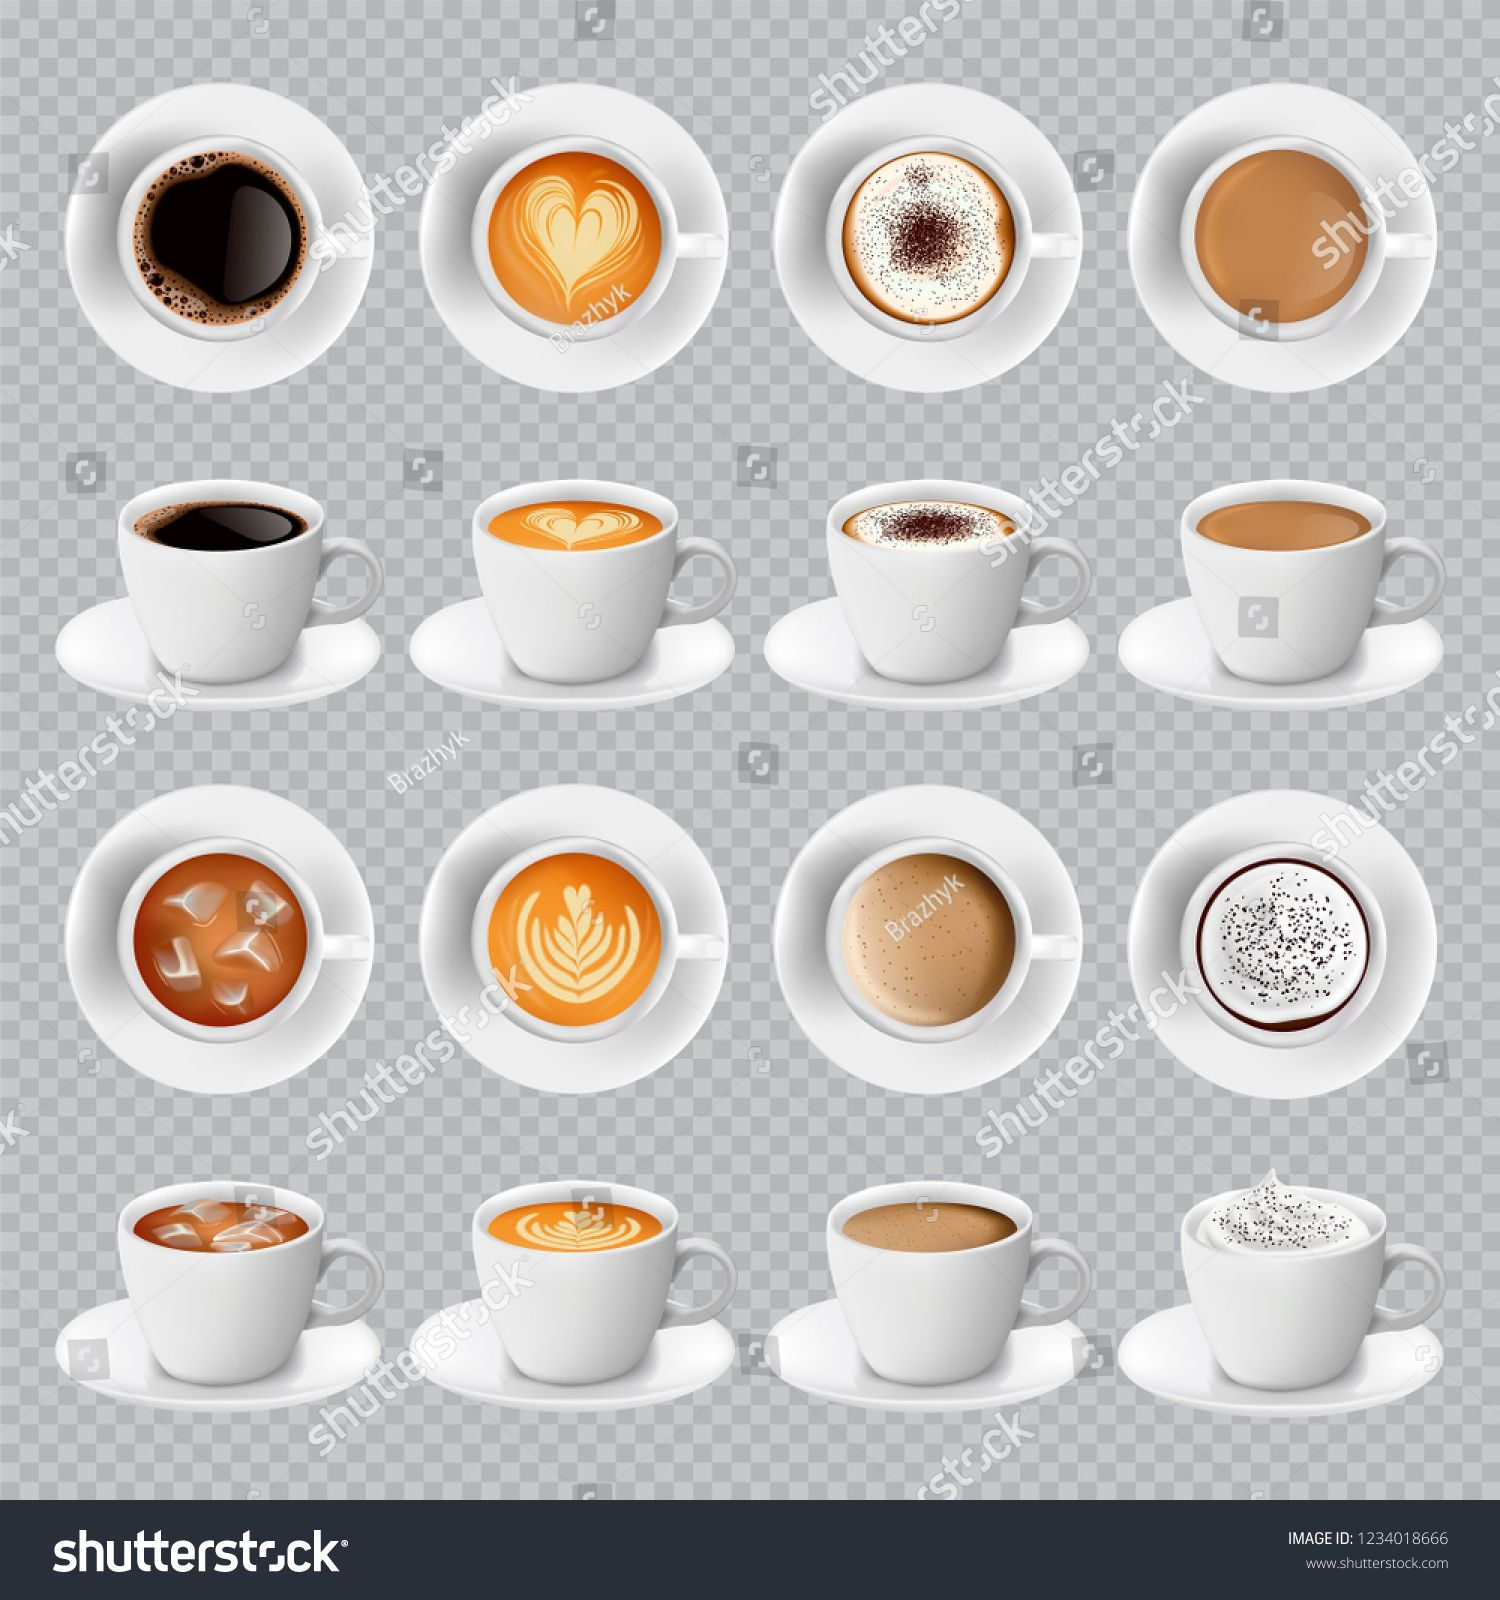 Realistic different sorts of coffee in white cups view from